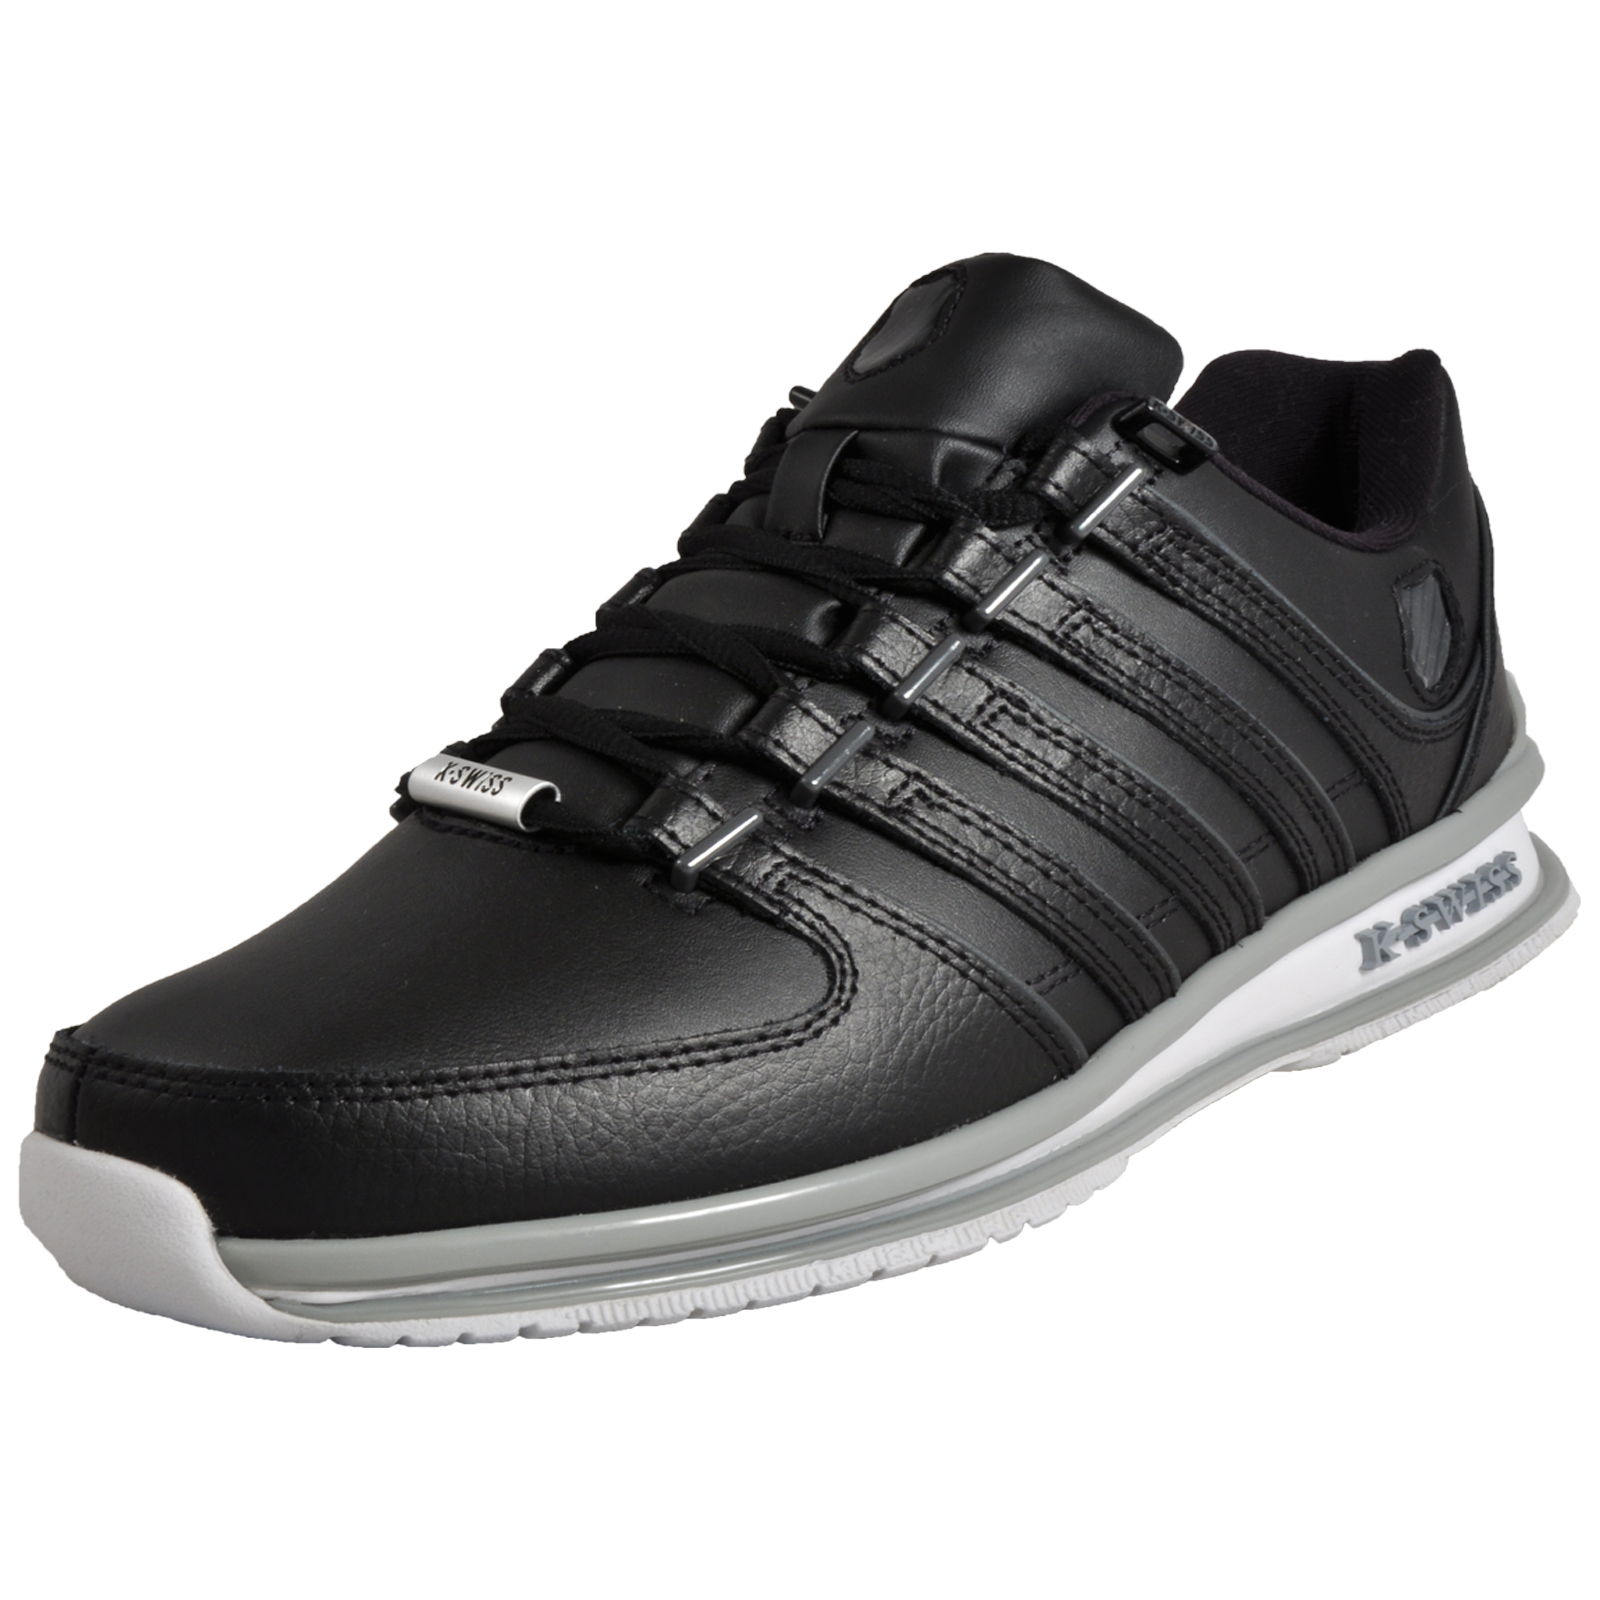 96c4d3f5bc8b1b Details about K Swiss Rinzler SP Limited Edition Mens Classic Casual Retro  Trainers Black